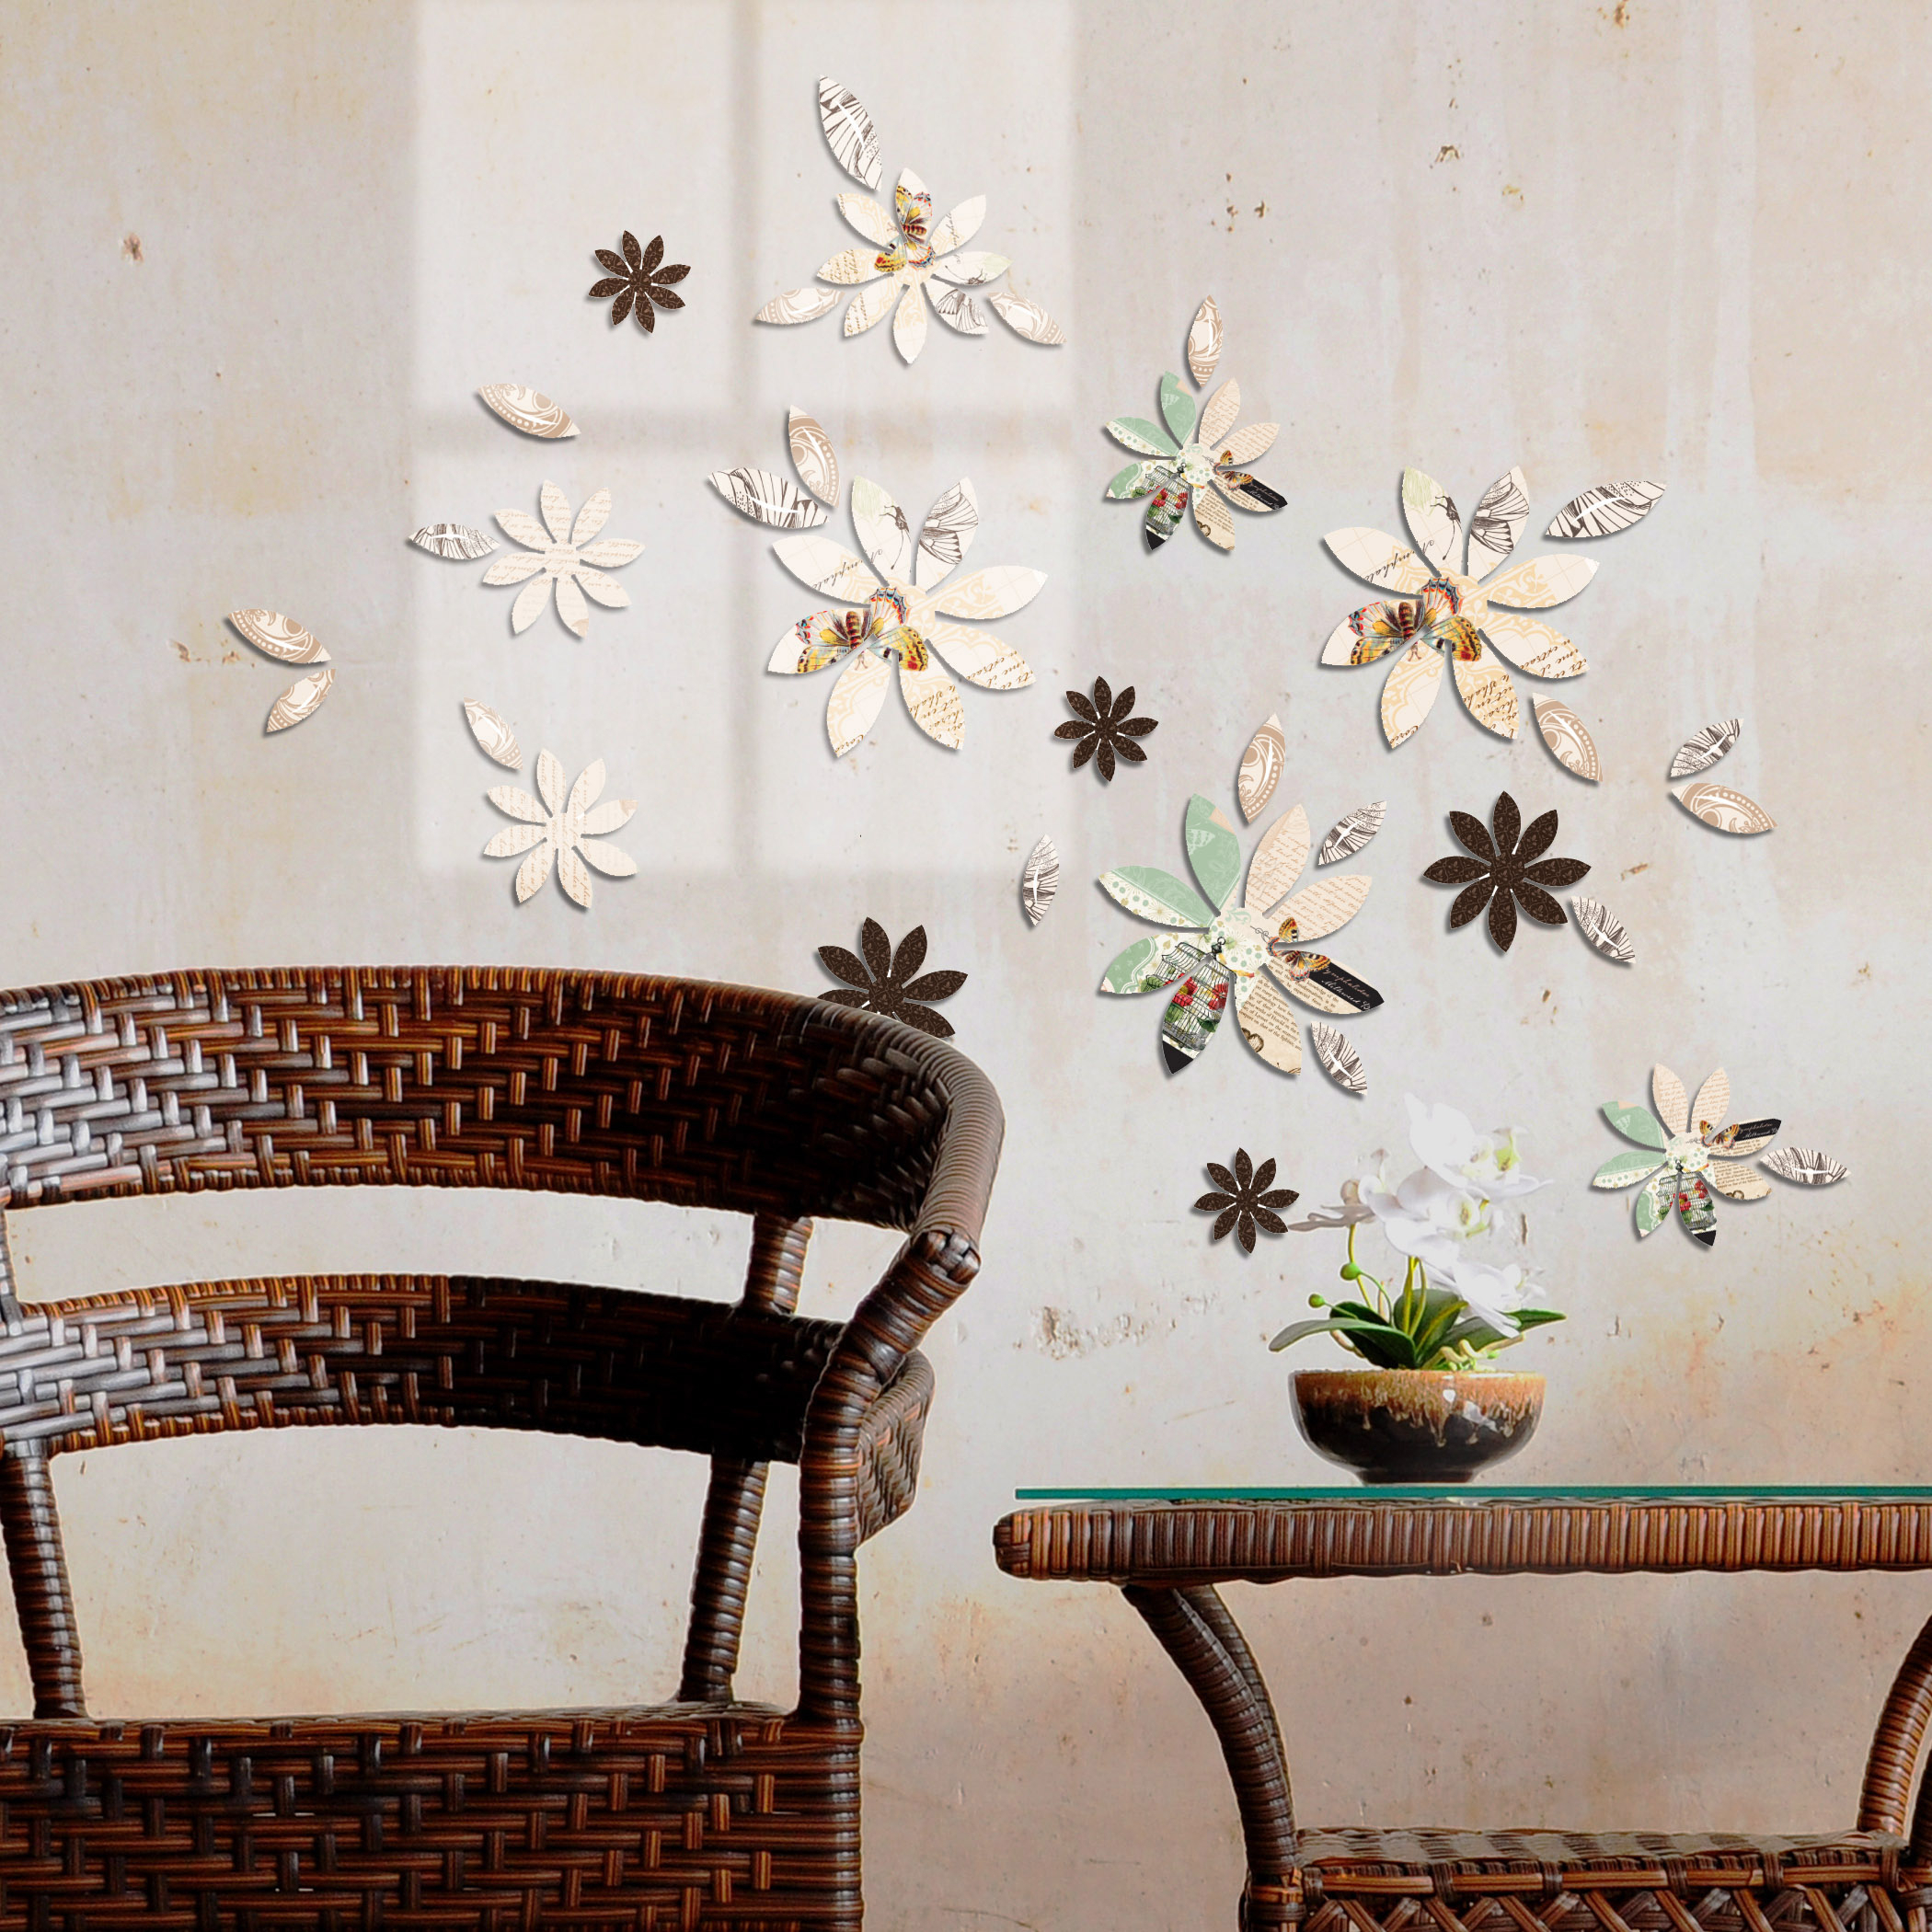 3D Wall Decor Brown Flowers With Mariposa Print, 9-Piece with regard to Mariposa 9 Piece Wall Decor (Image 5 of 30)